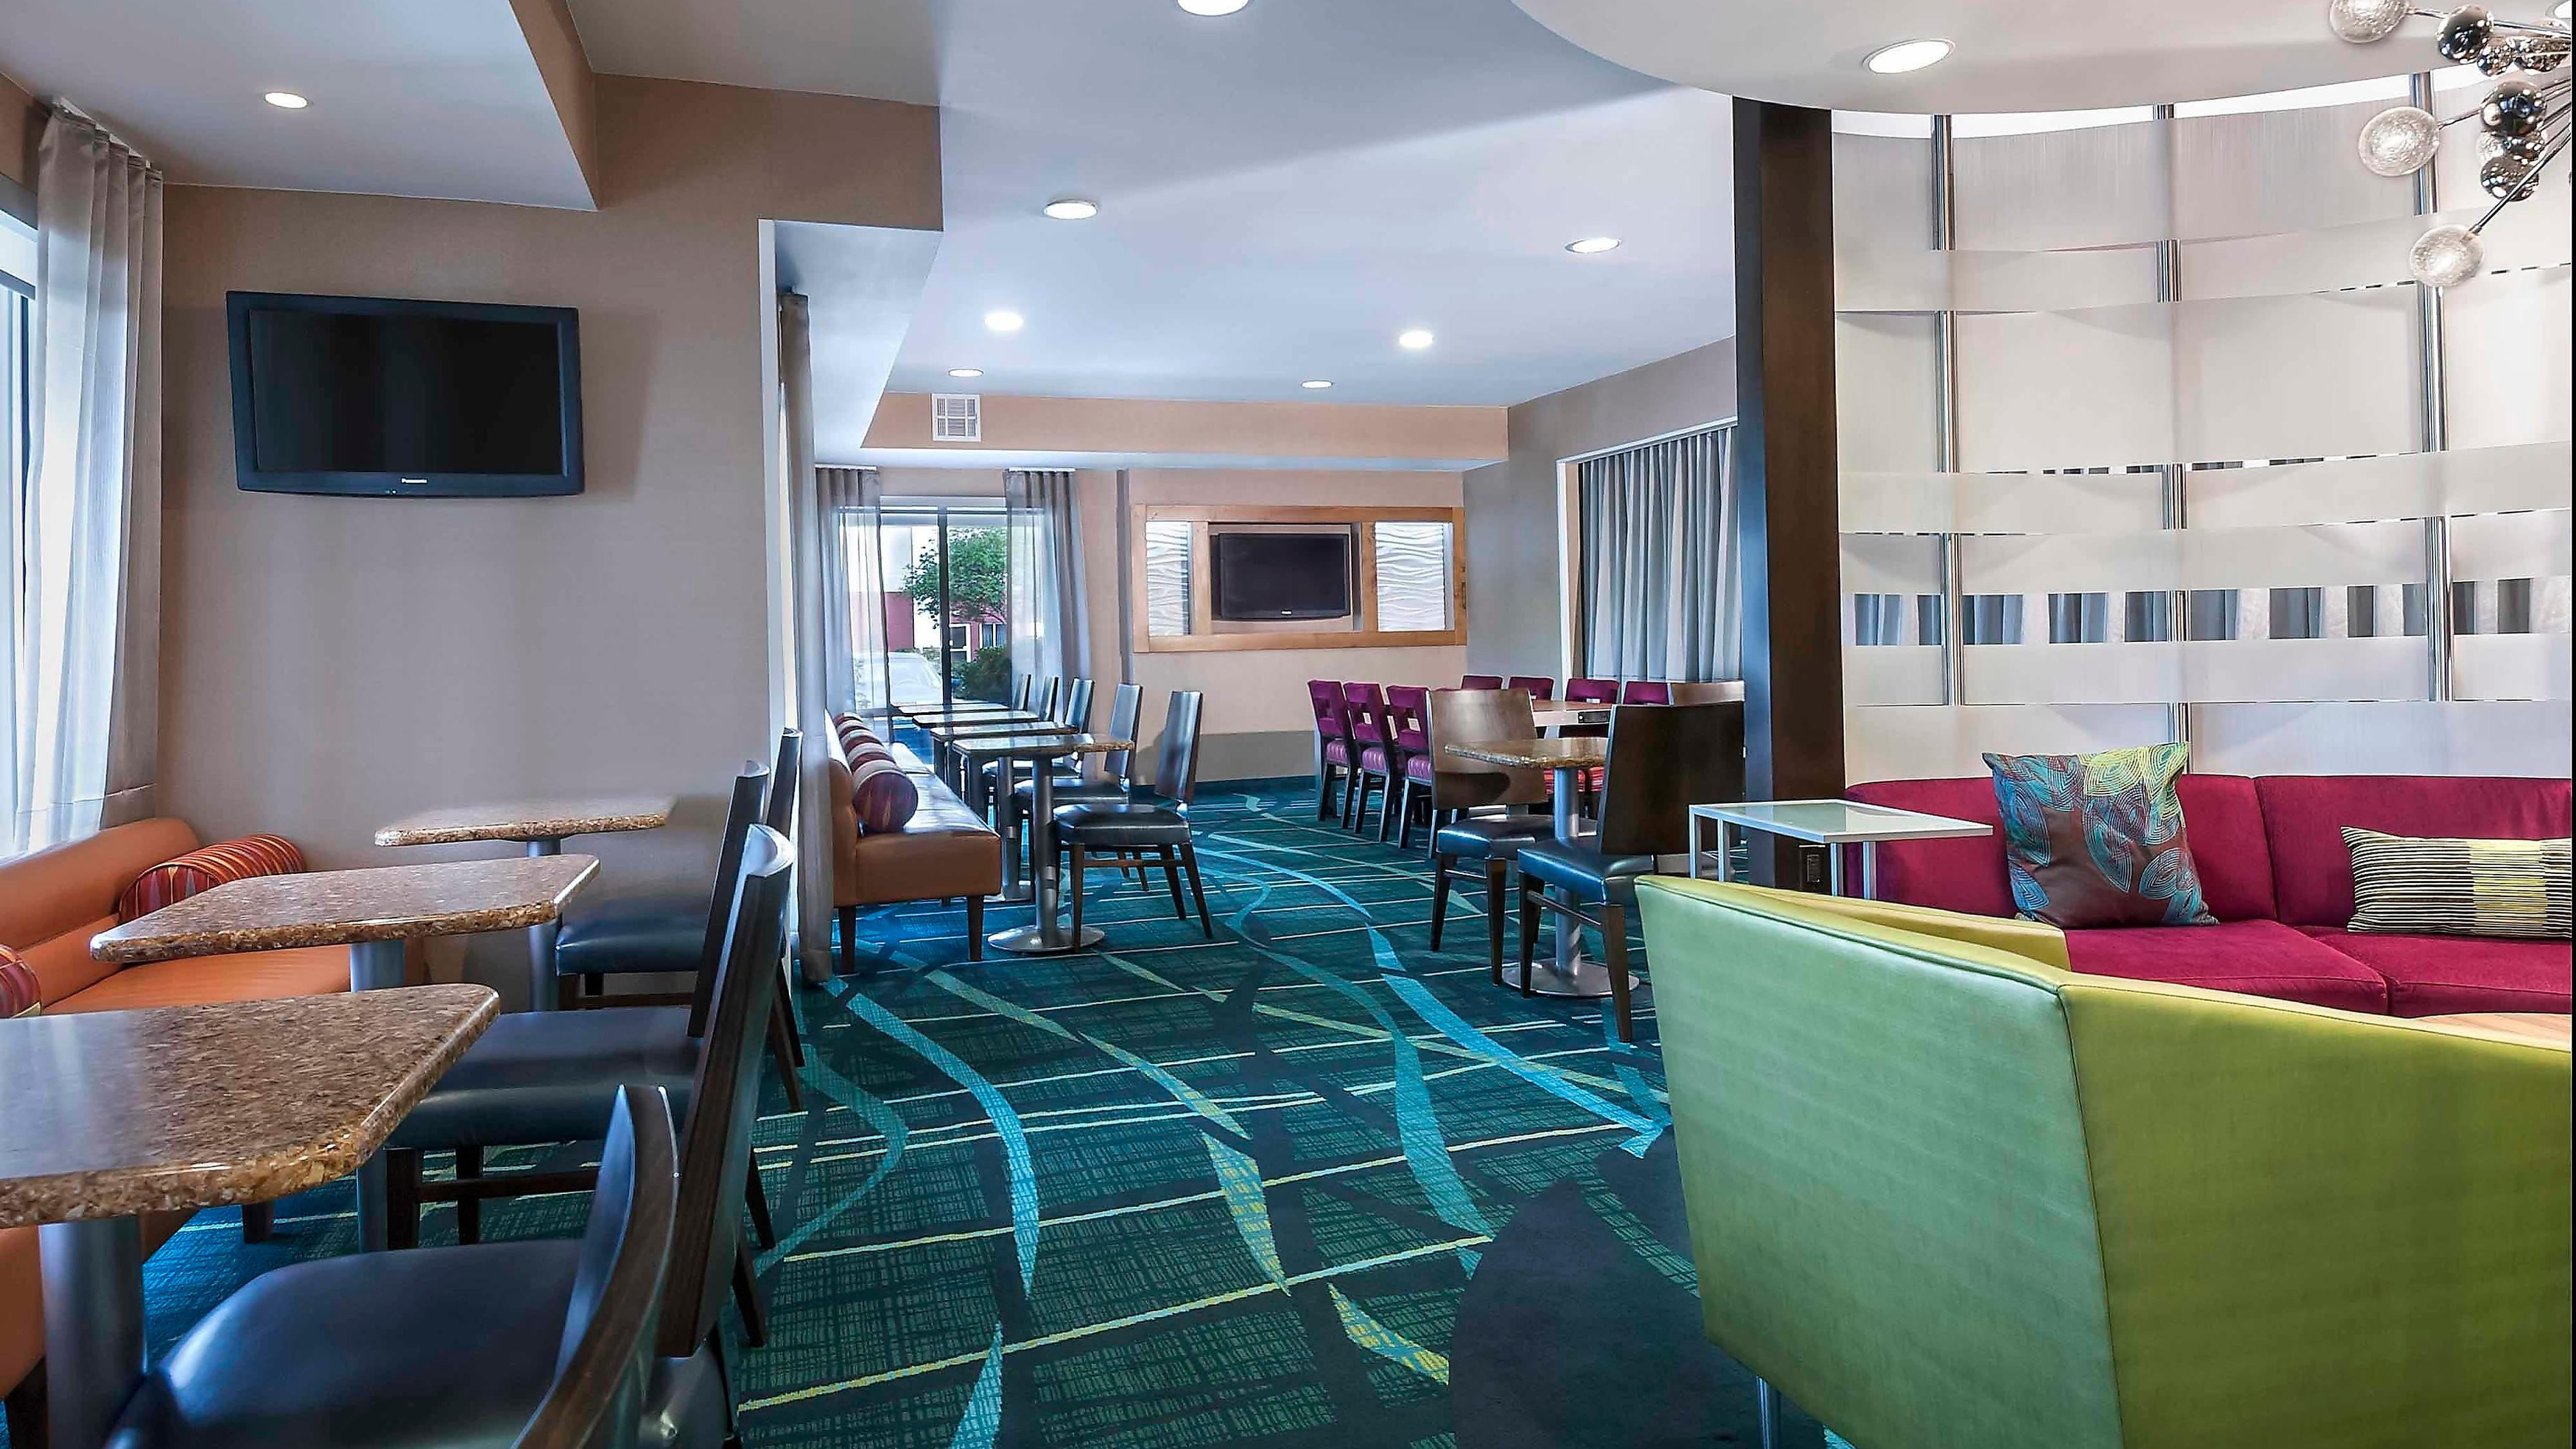 SpringHill Suites by Marriott Baton Rouge South image 12